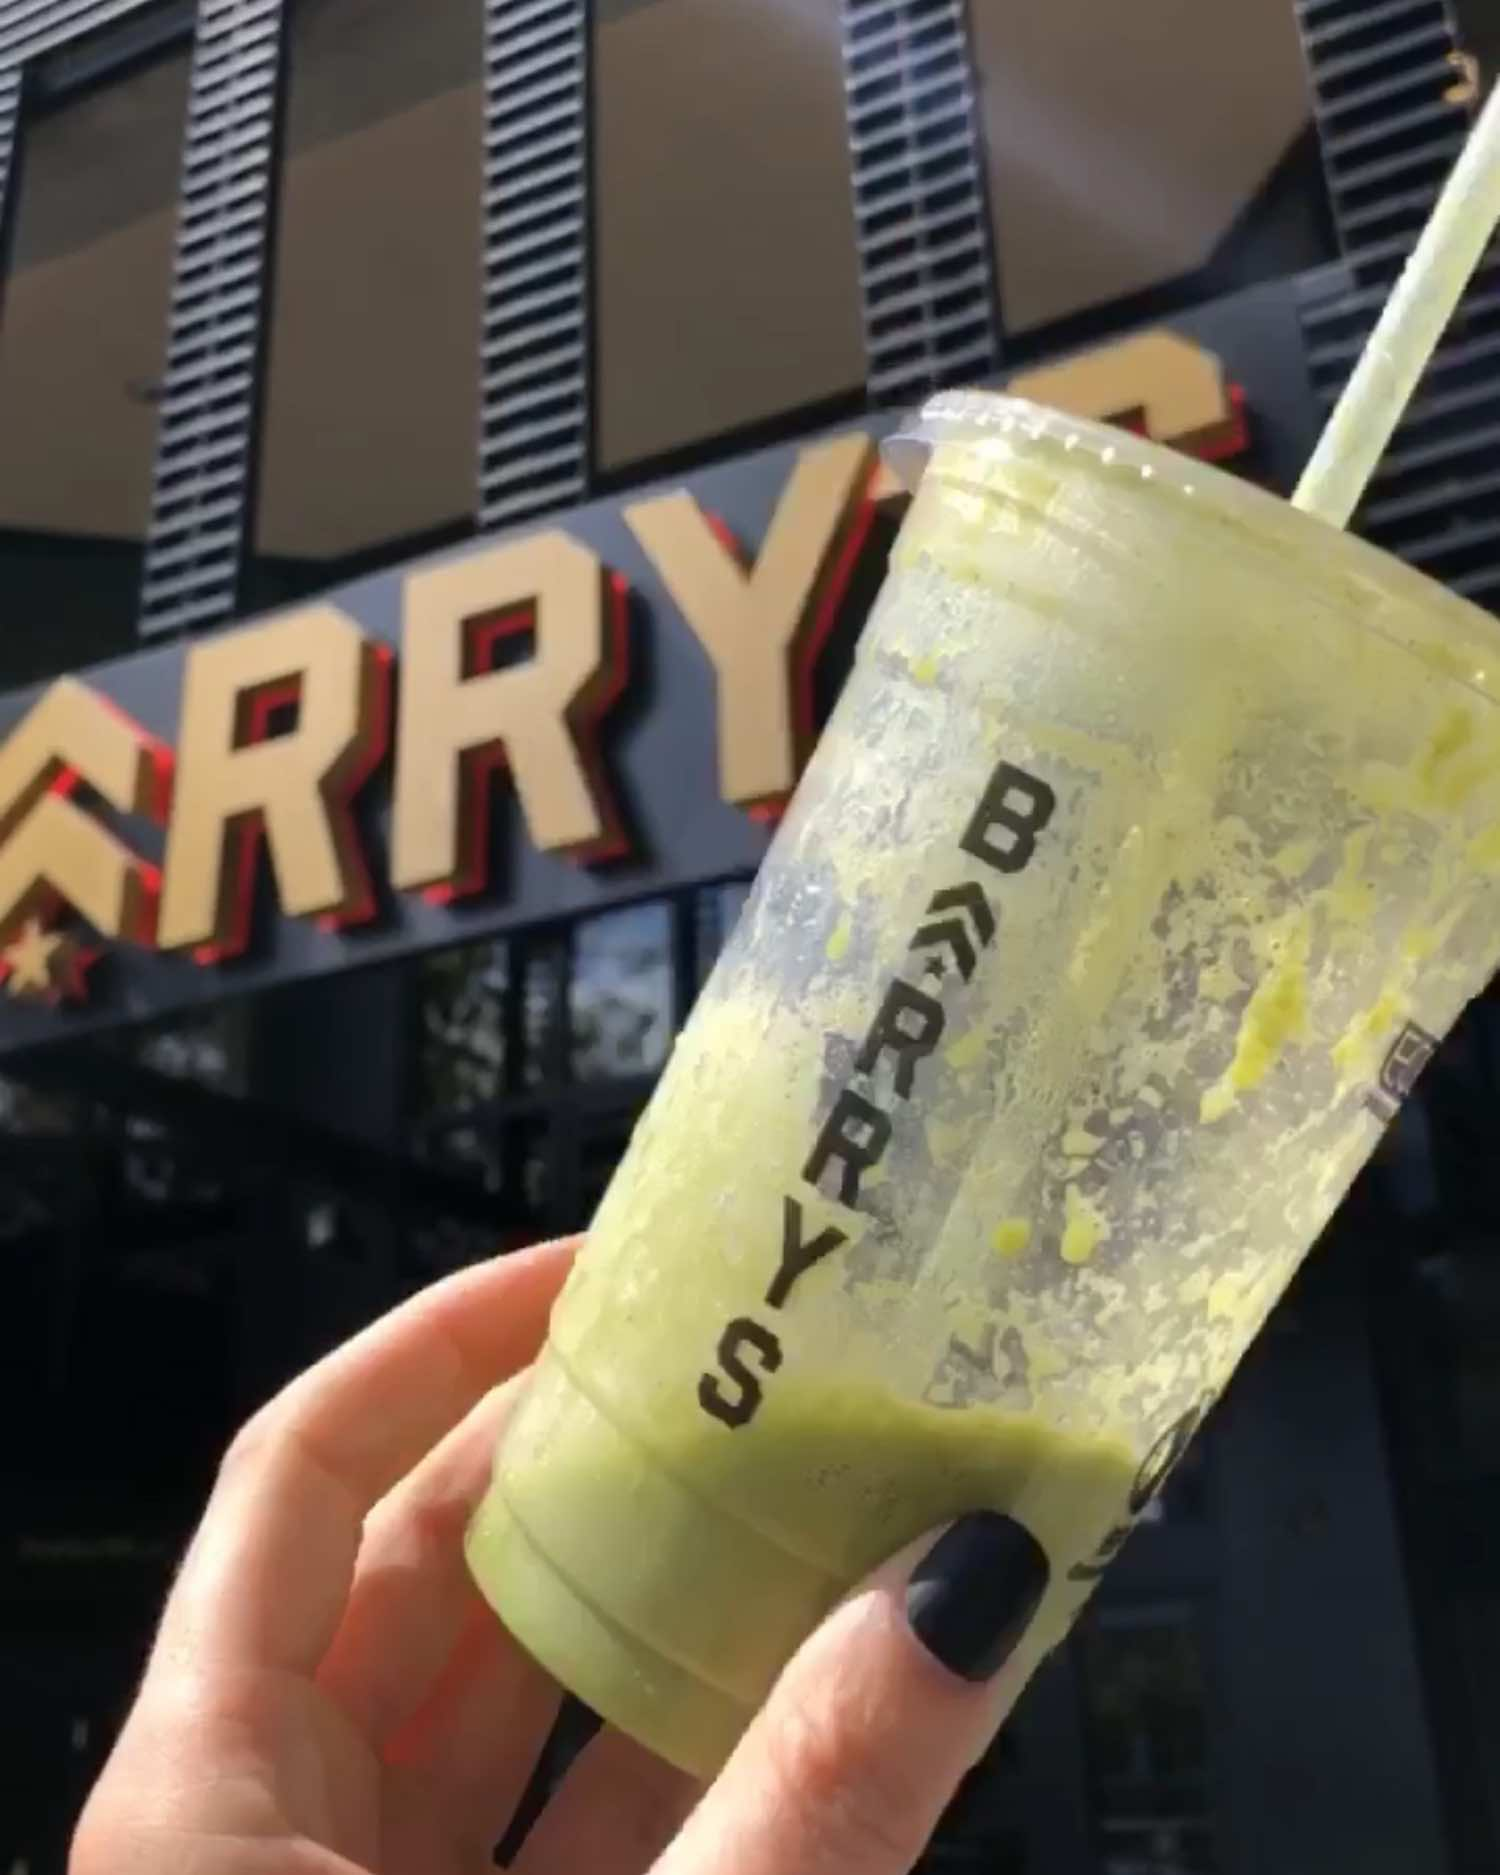 Barry's Green Latifah Shake